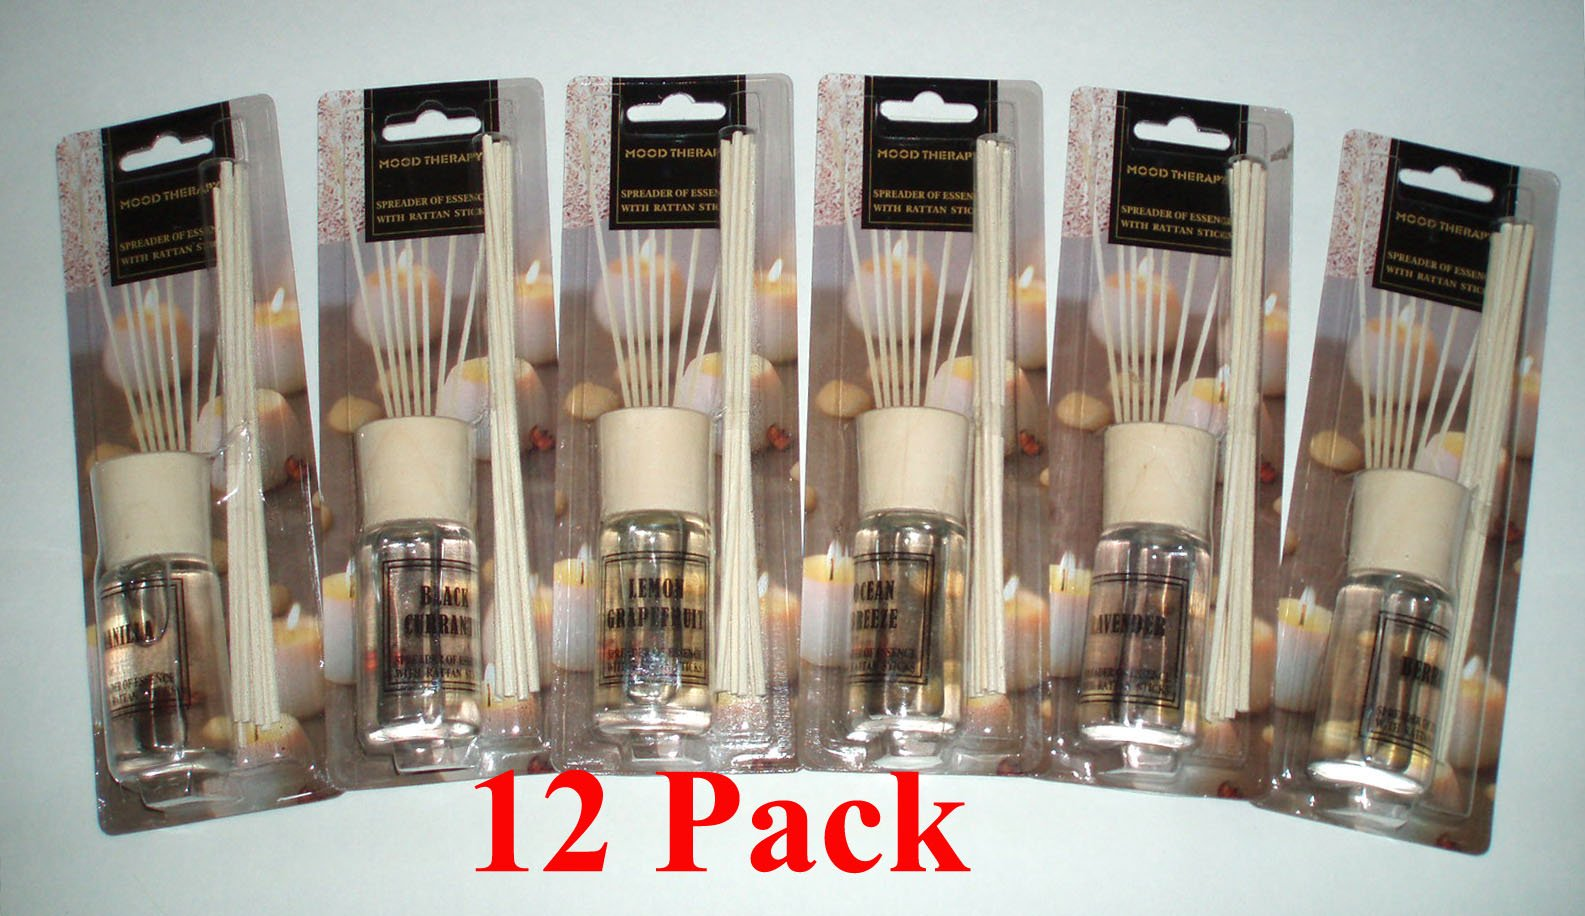 12 packs Mood Therapy Fragrance Oil Reed Diffuser Sets Wholesale Lot (12 x 1.2 oz) (Case of 12) HUGE VALUE